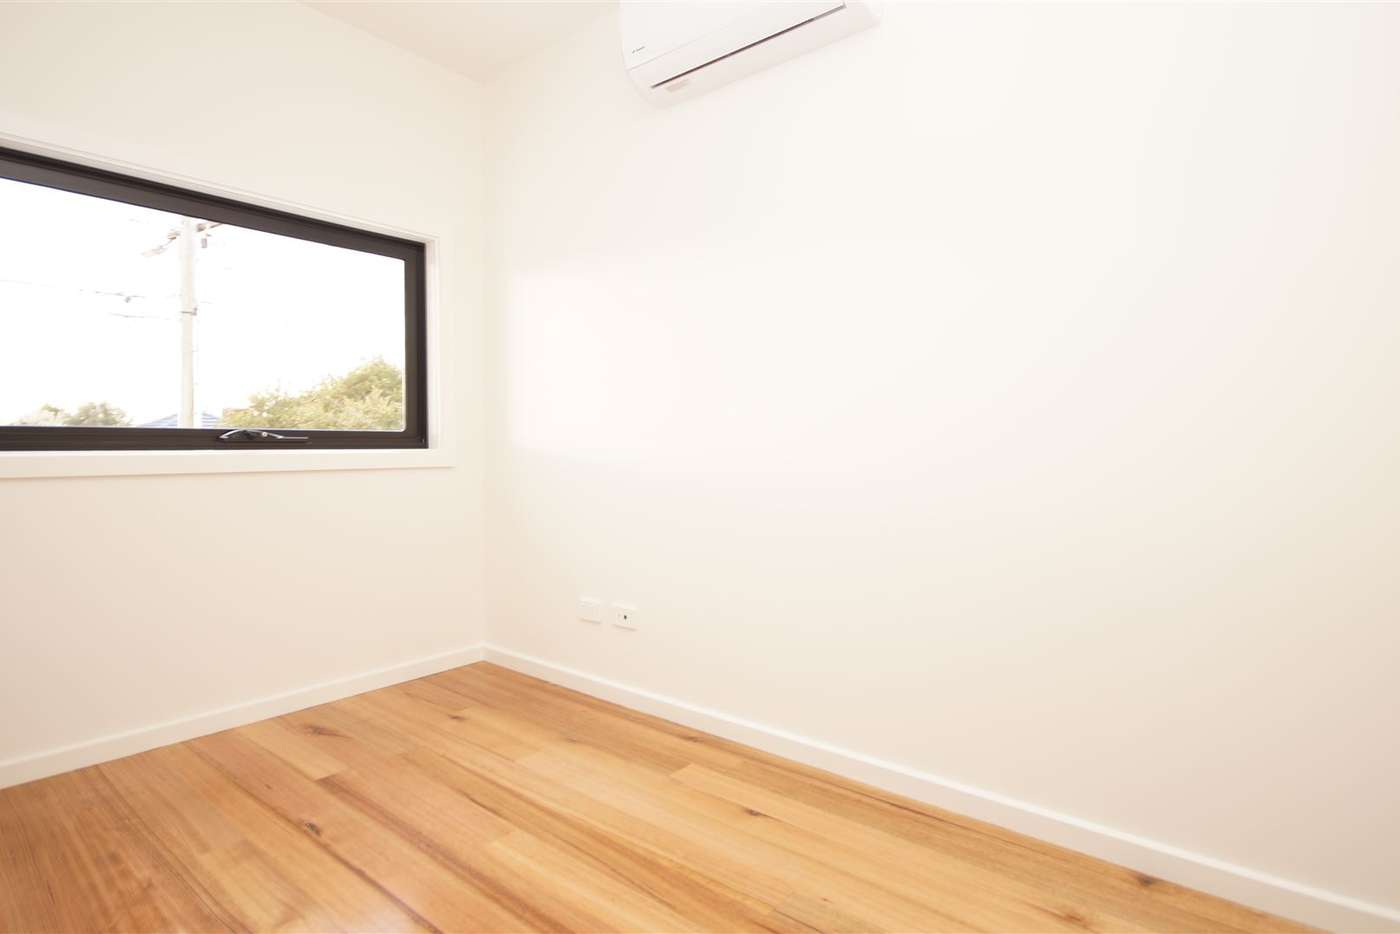 Seventh view of Homely townhouse listing, 23 Fontein St, West Footscray VIC 3012